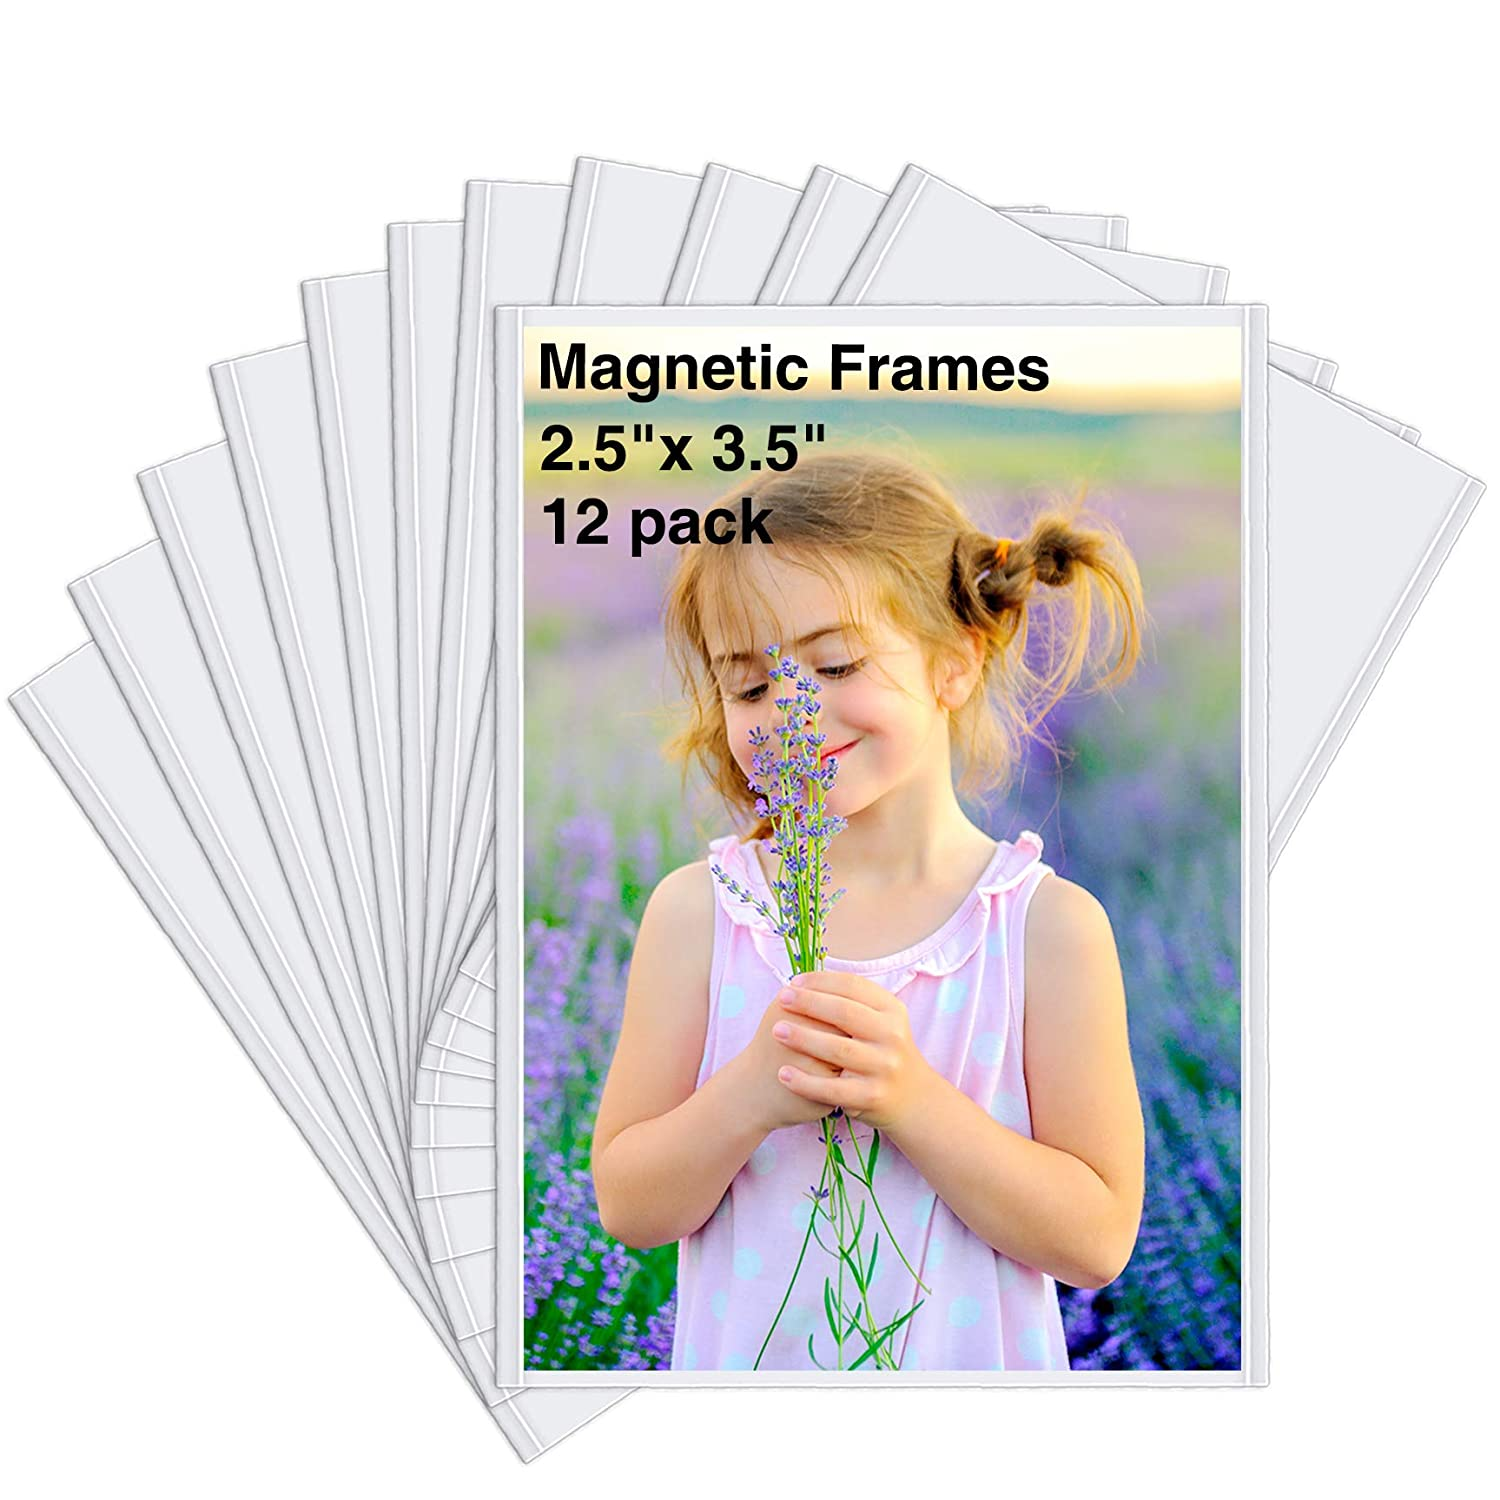 HIIMIEI 12 Pack 2.5x3.5 Wallet Magnetic Picture Refrigerator Frames for Polaroid instax Photos,2x3 Small Fridge Magnet Photo Frames Pocket